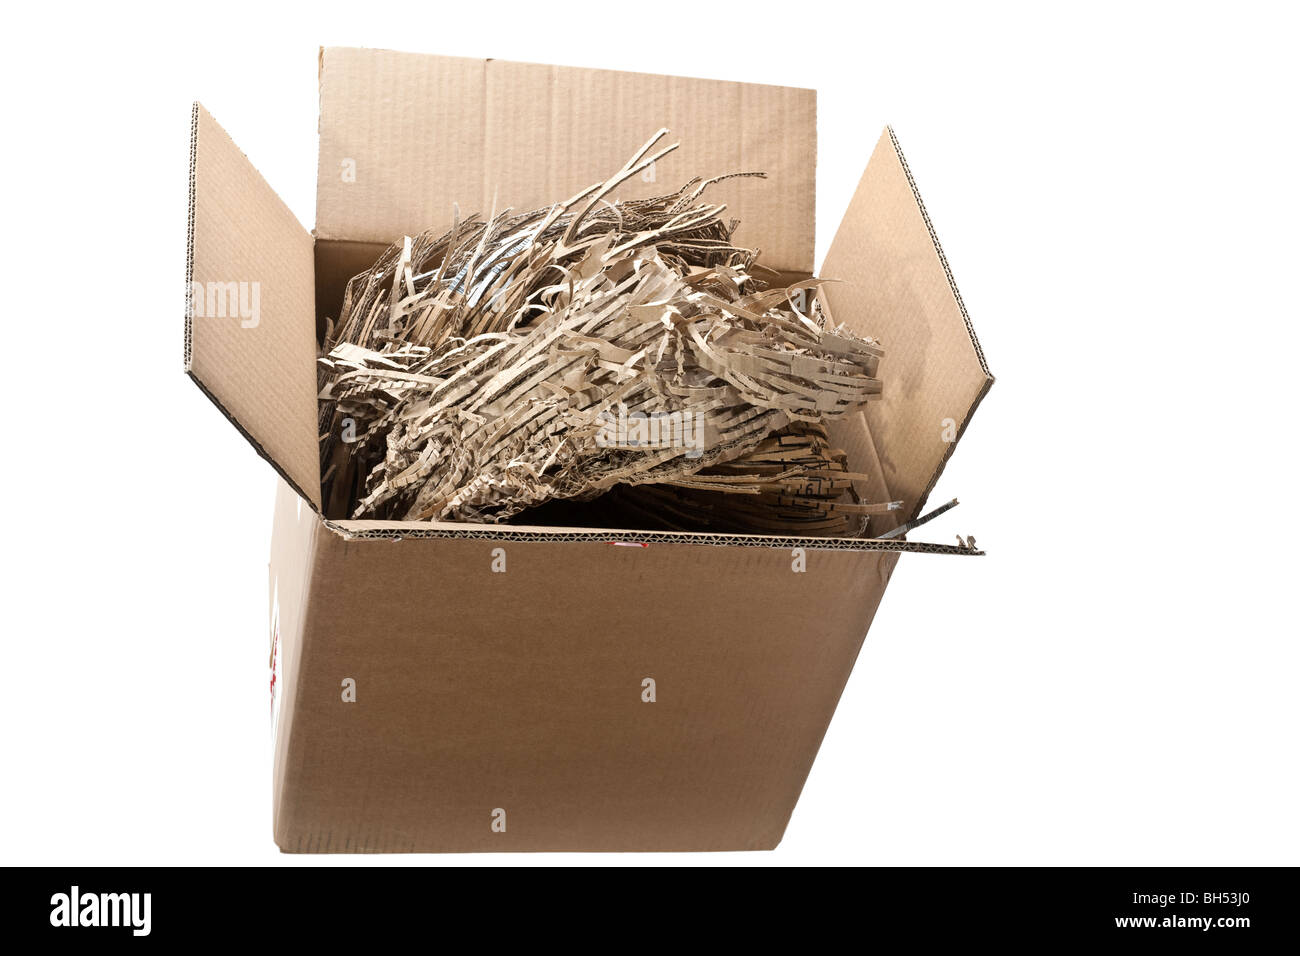 Cardboard box full of shredded cardboard recycled packing material - Stock Image